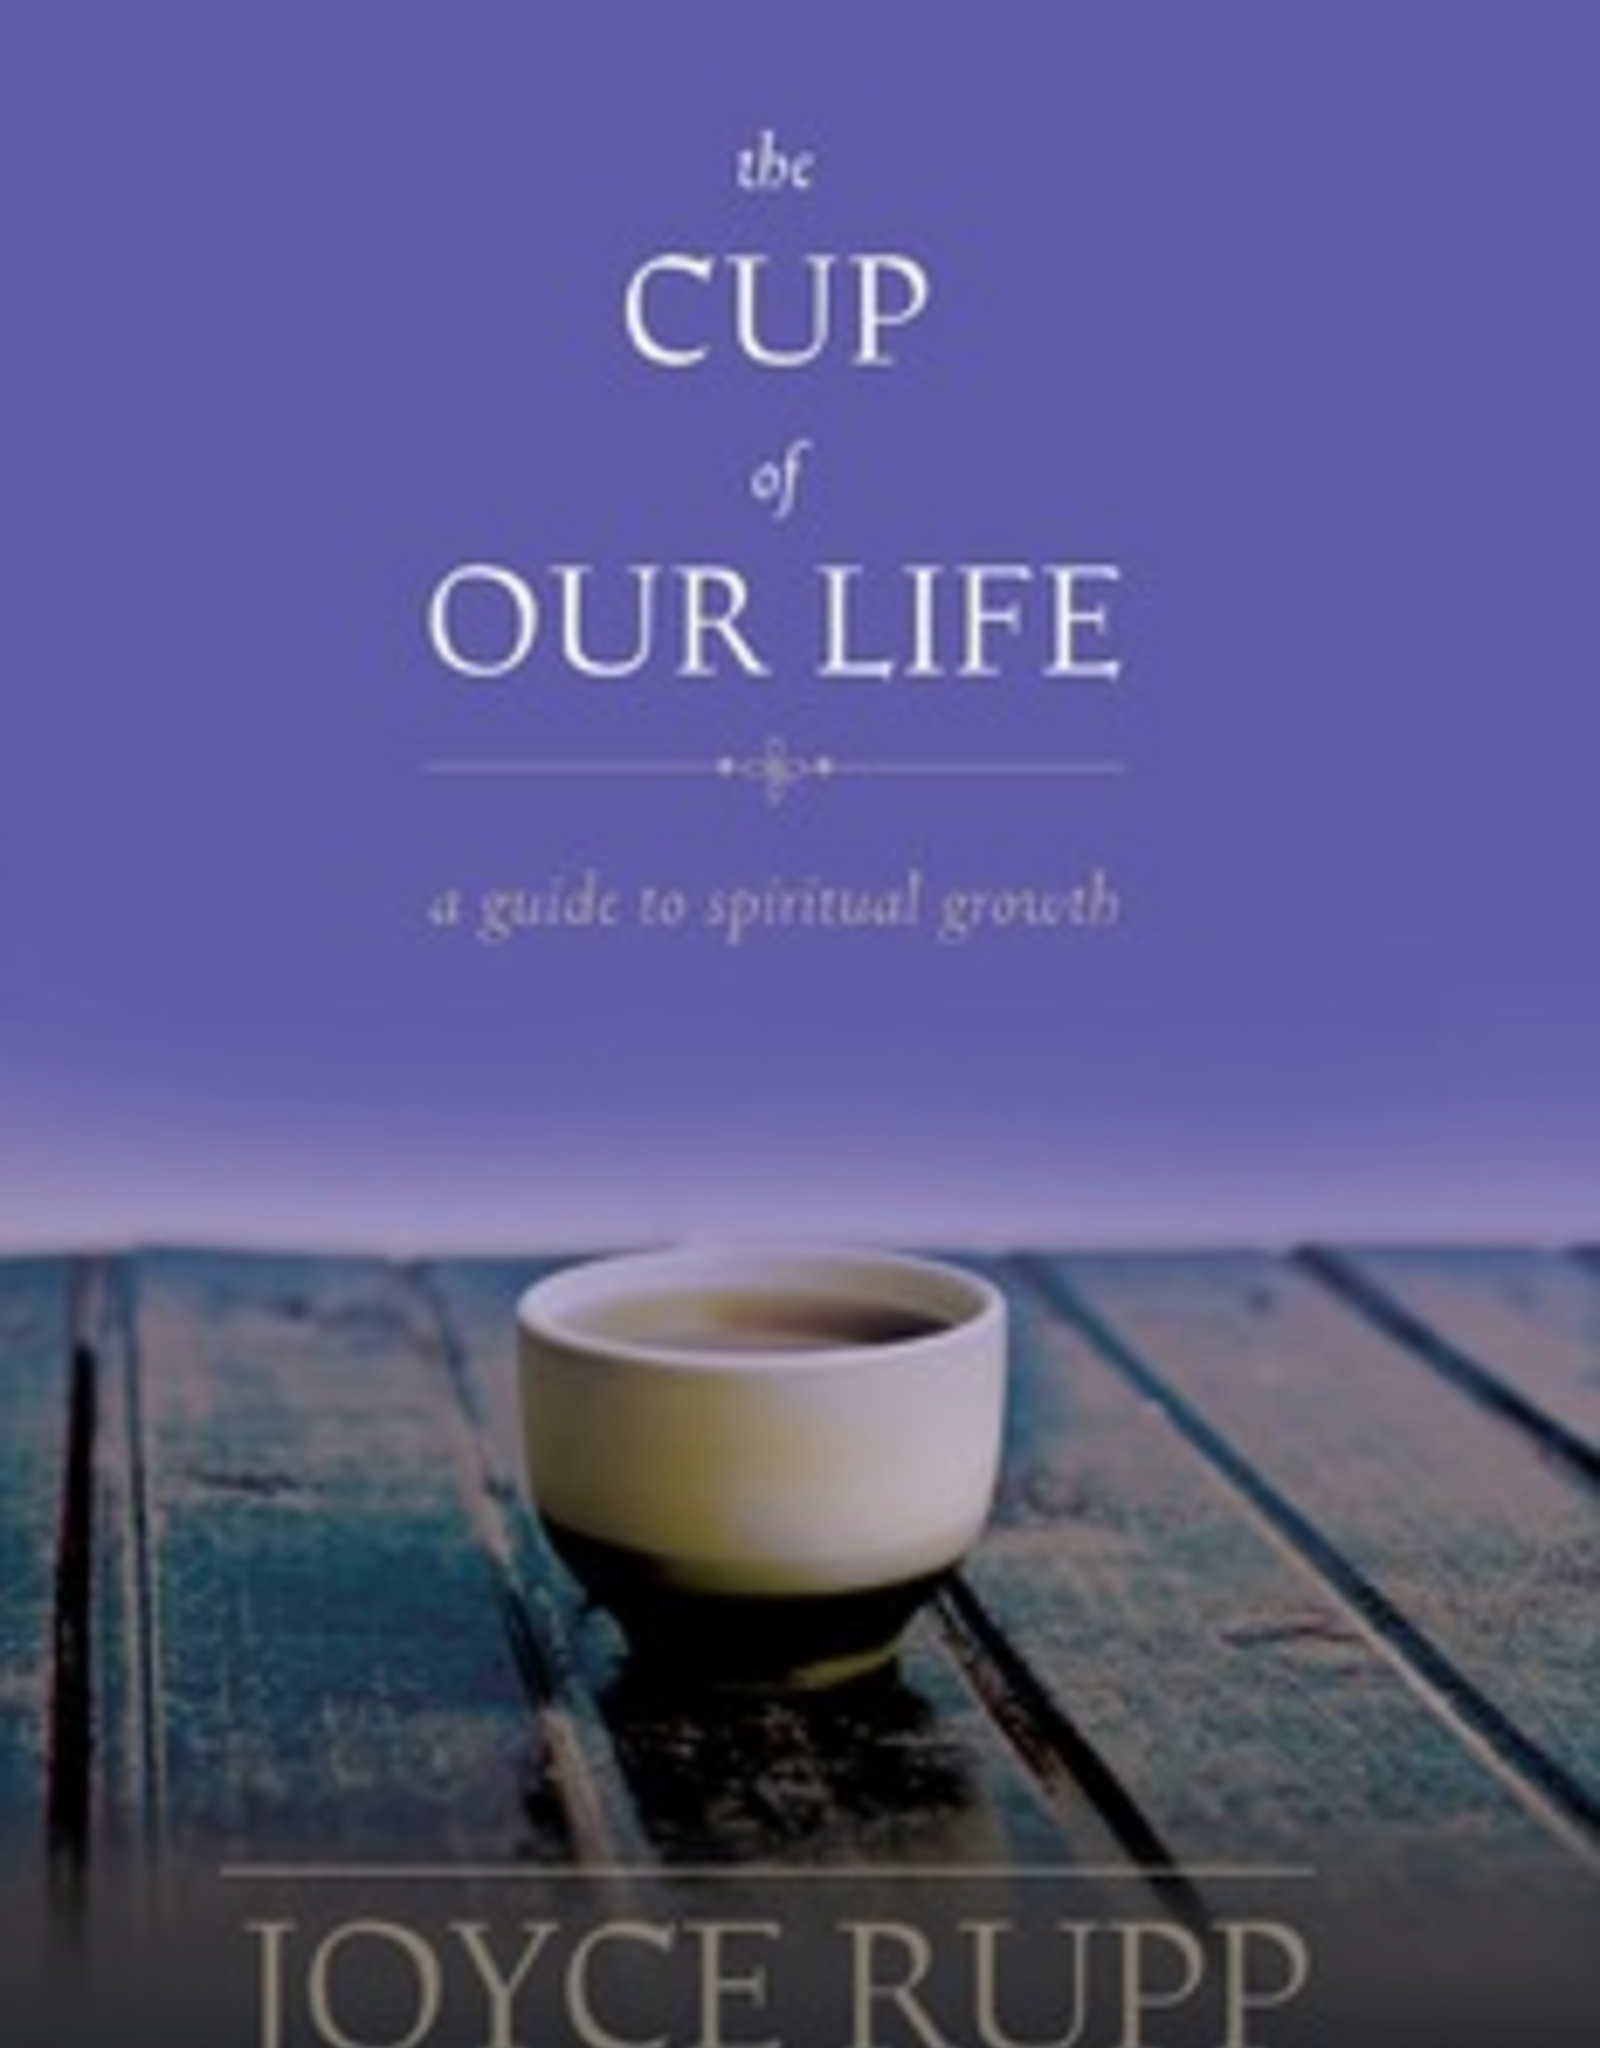 Ave Maria Press The Cup of Our Life:  A Guide to Spiritual Growth, by Joyce Rupp (paperback)